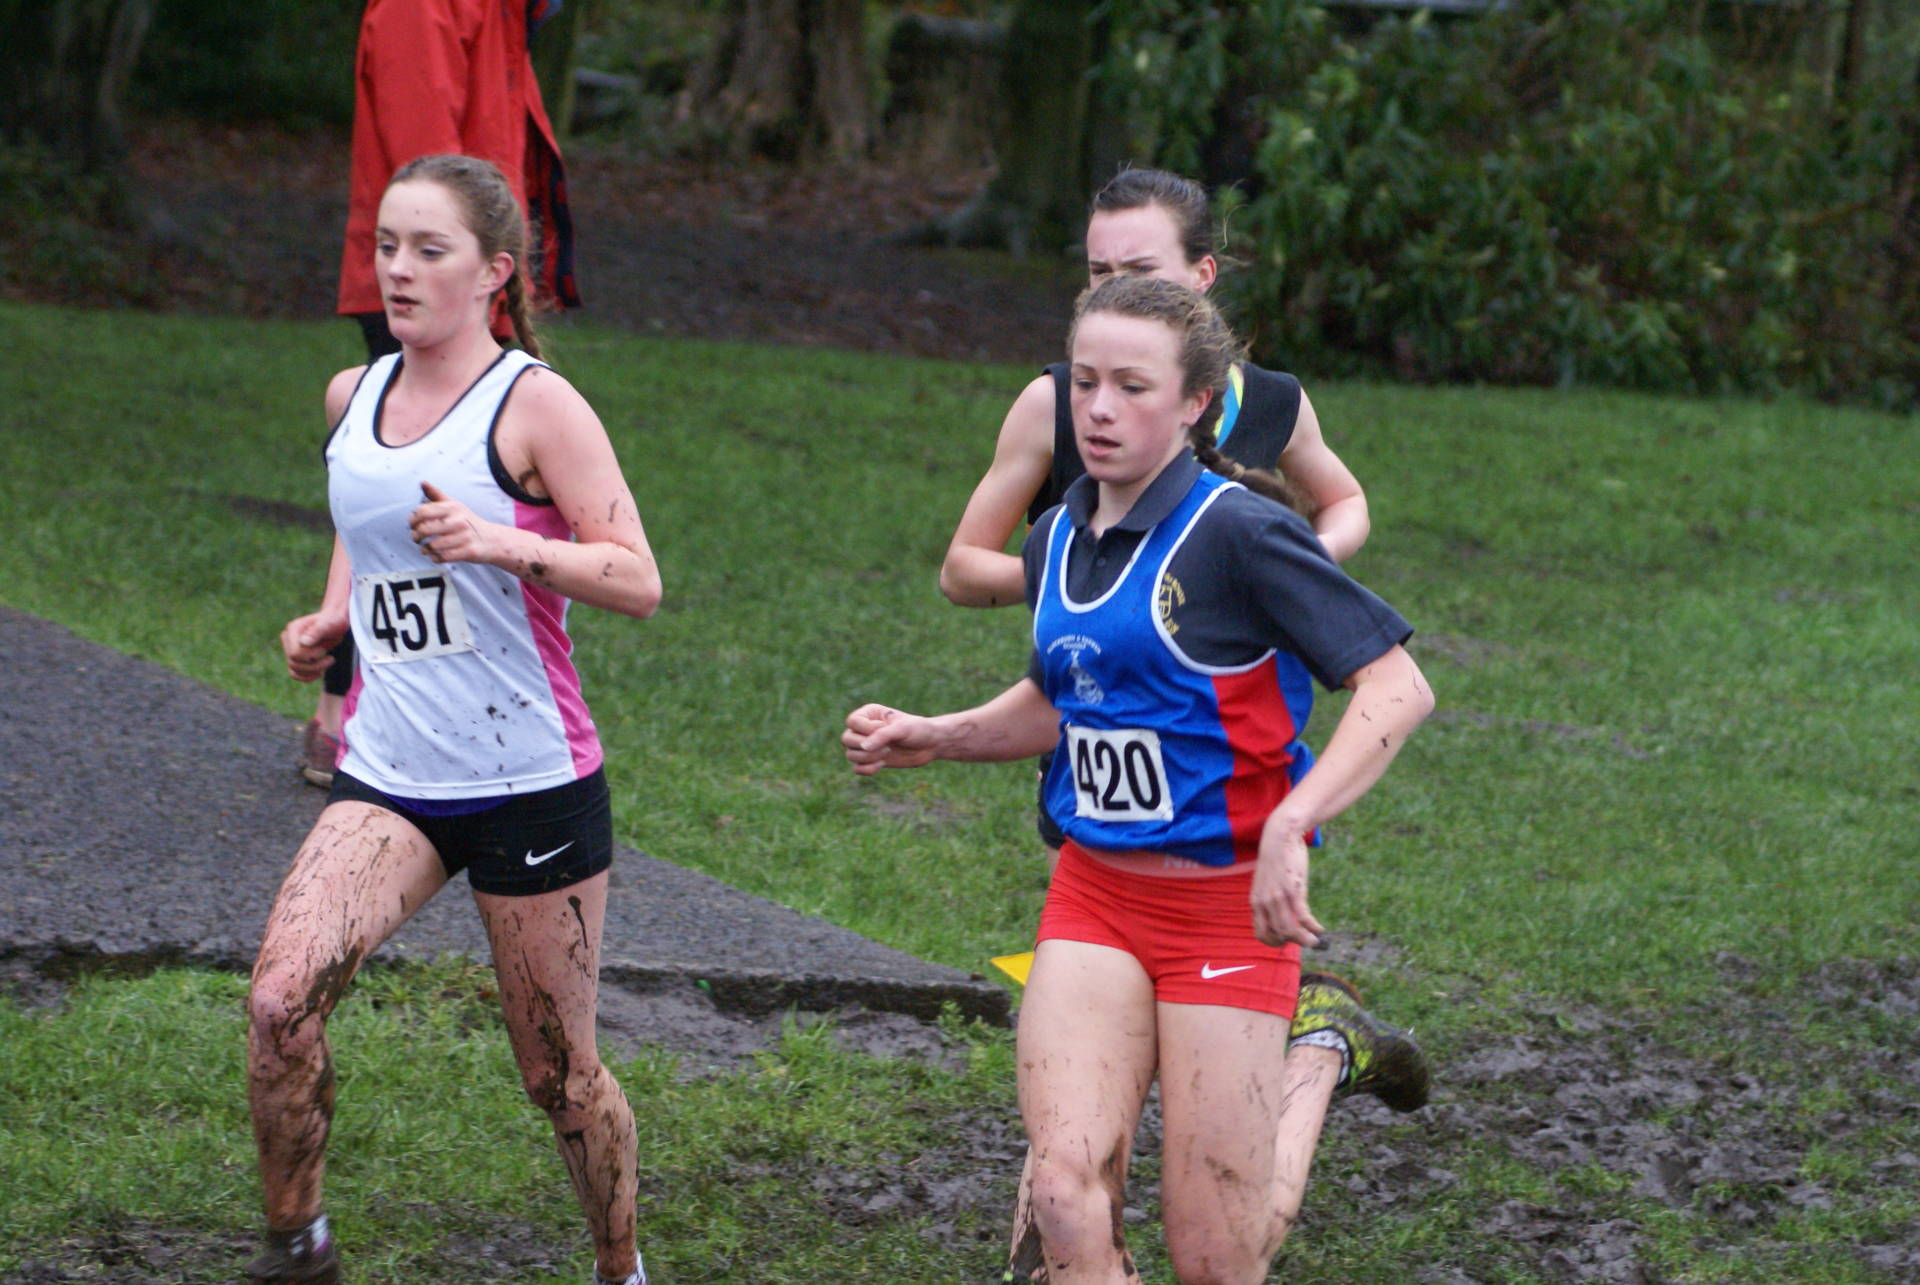 Wins for Harriers at Lancashire Schools Champs – Team, Vets and Junior Wins at Winter Warmer 10k & Results Round Up